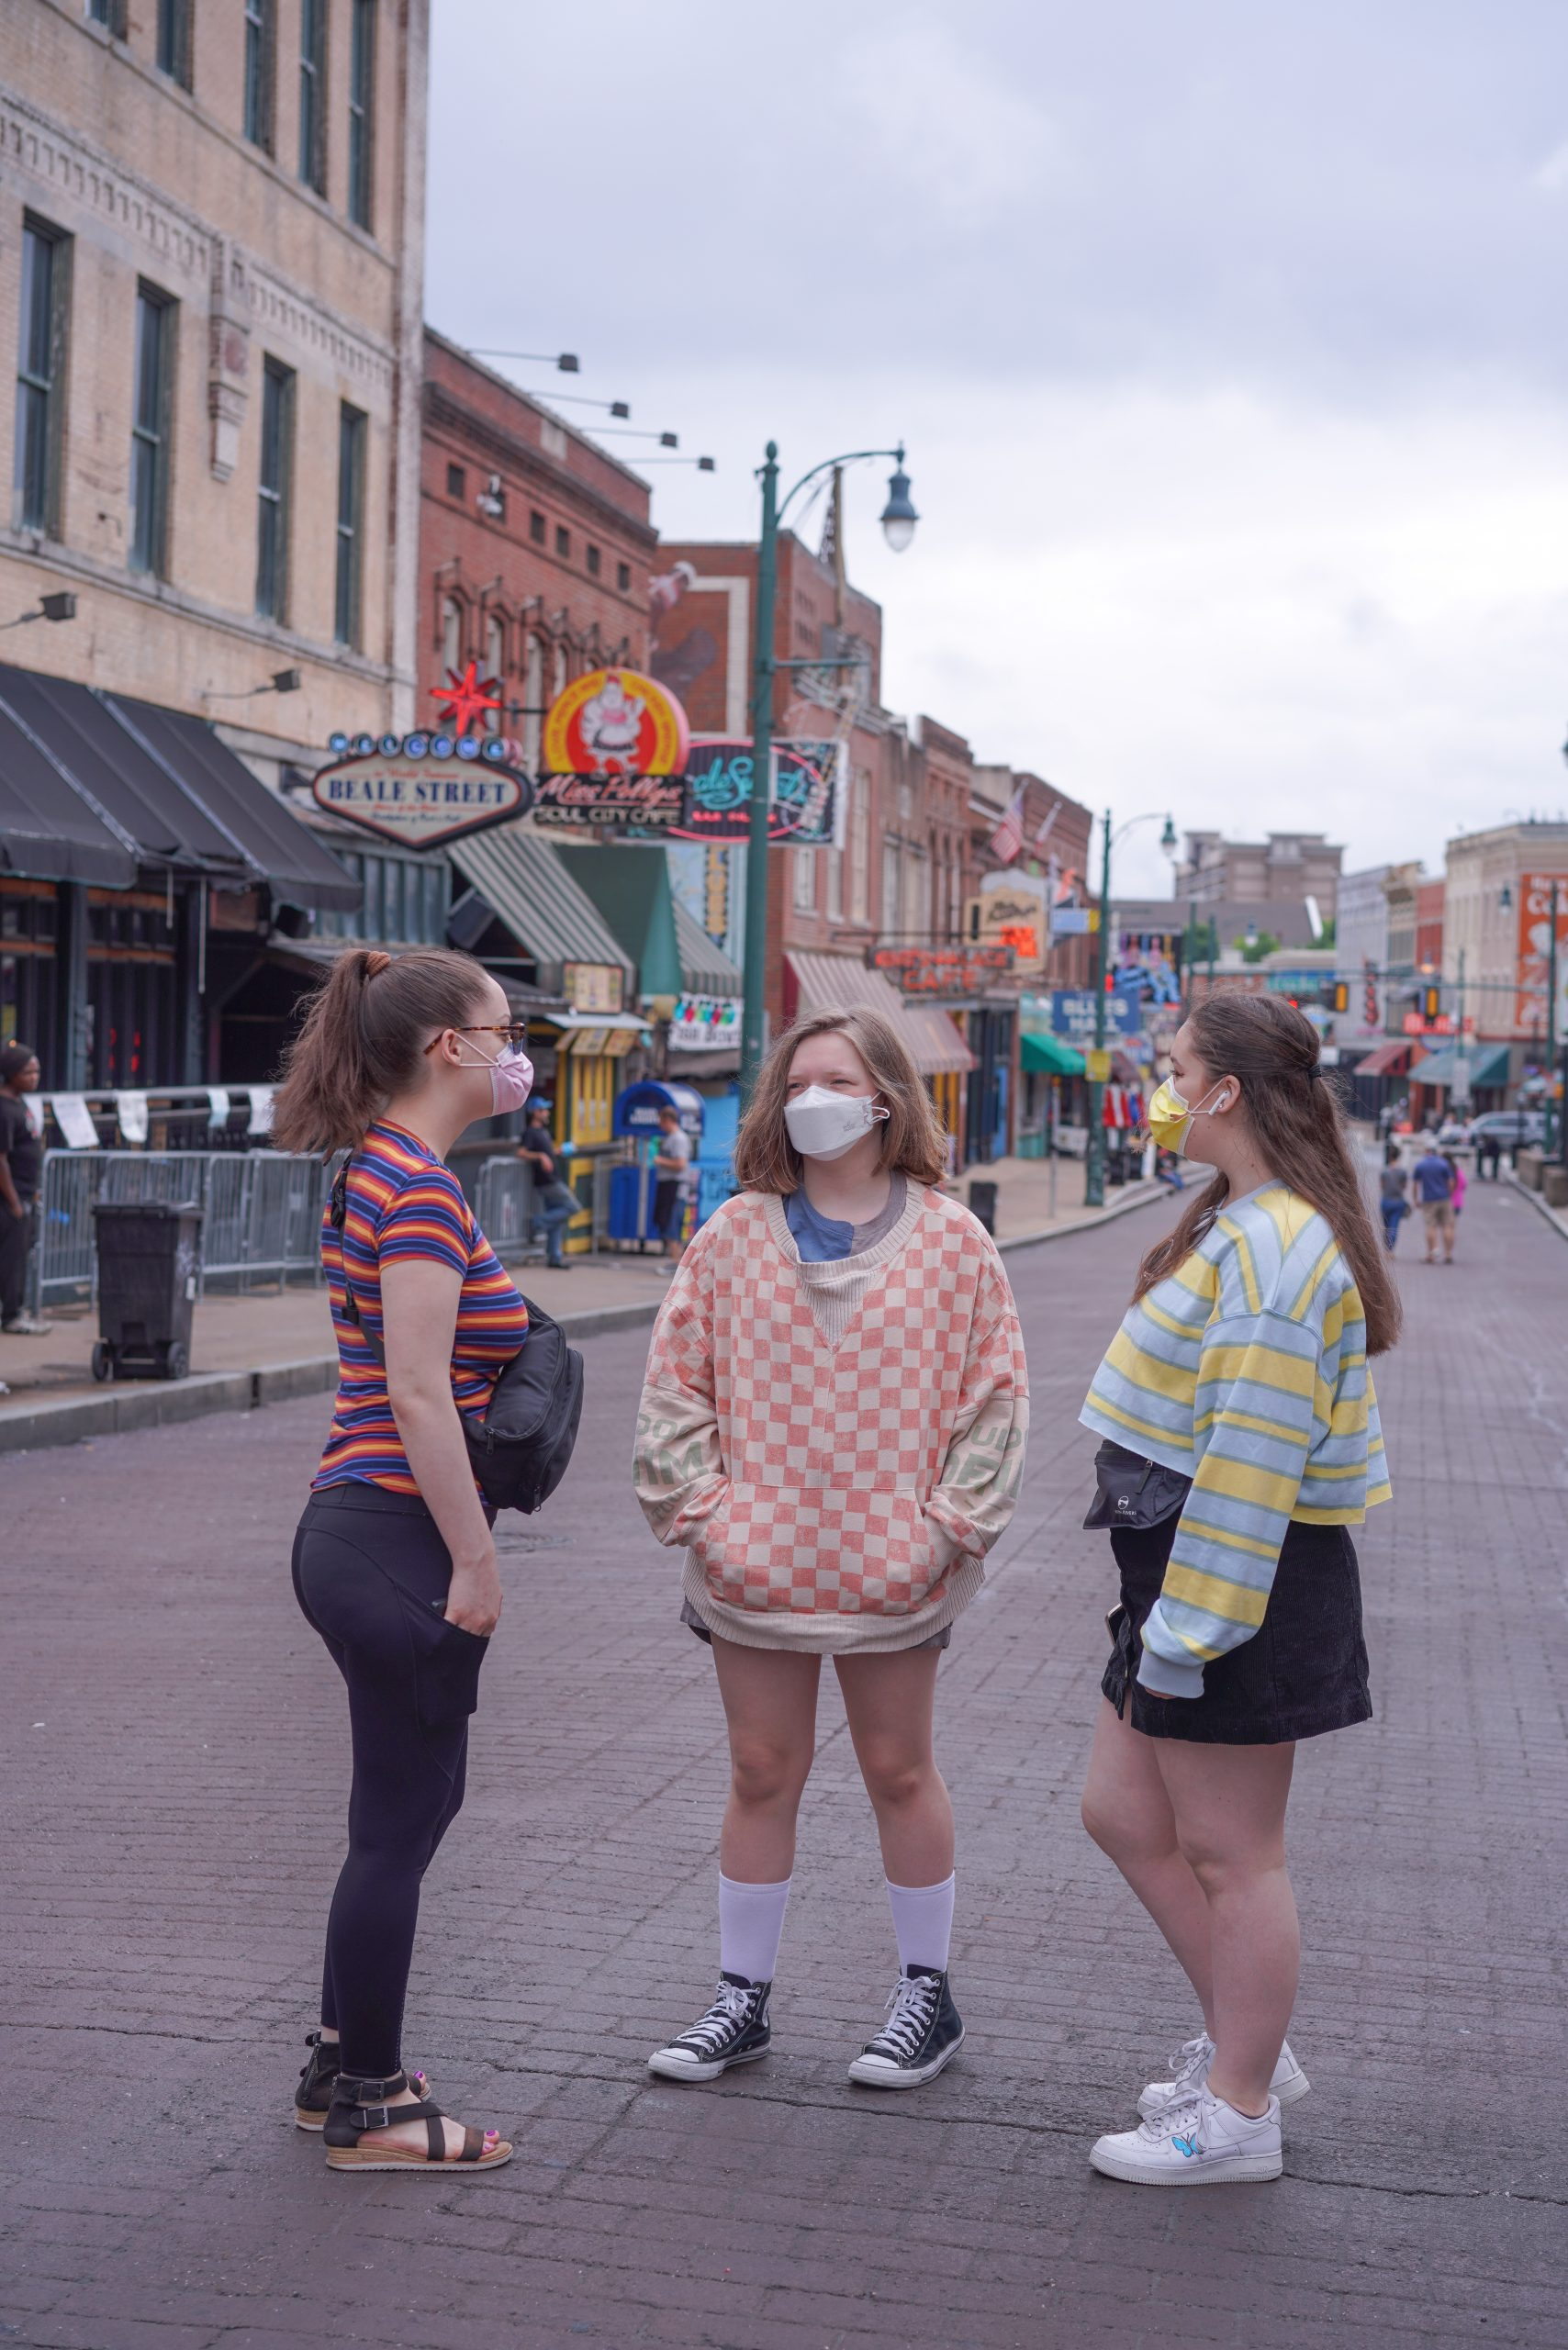 What to see and do on Beale Street Memphis, Tennessee